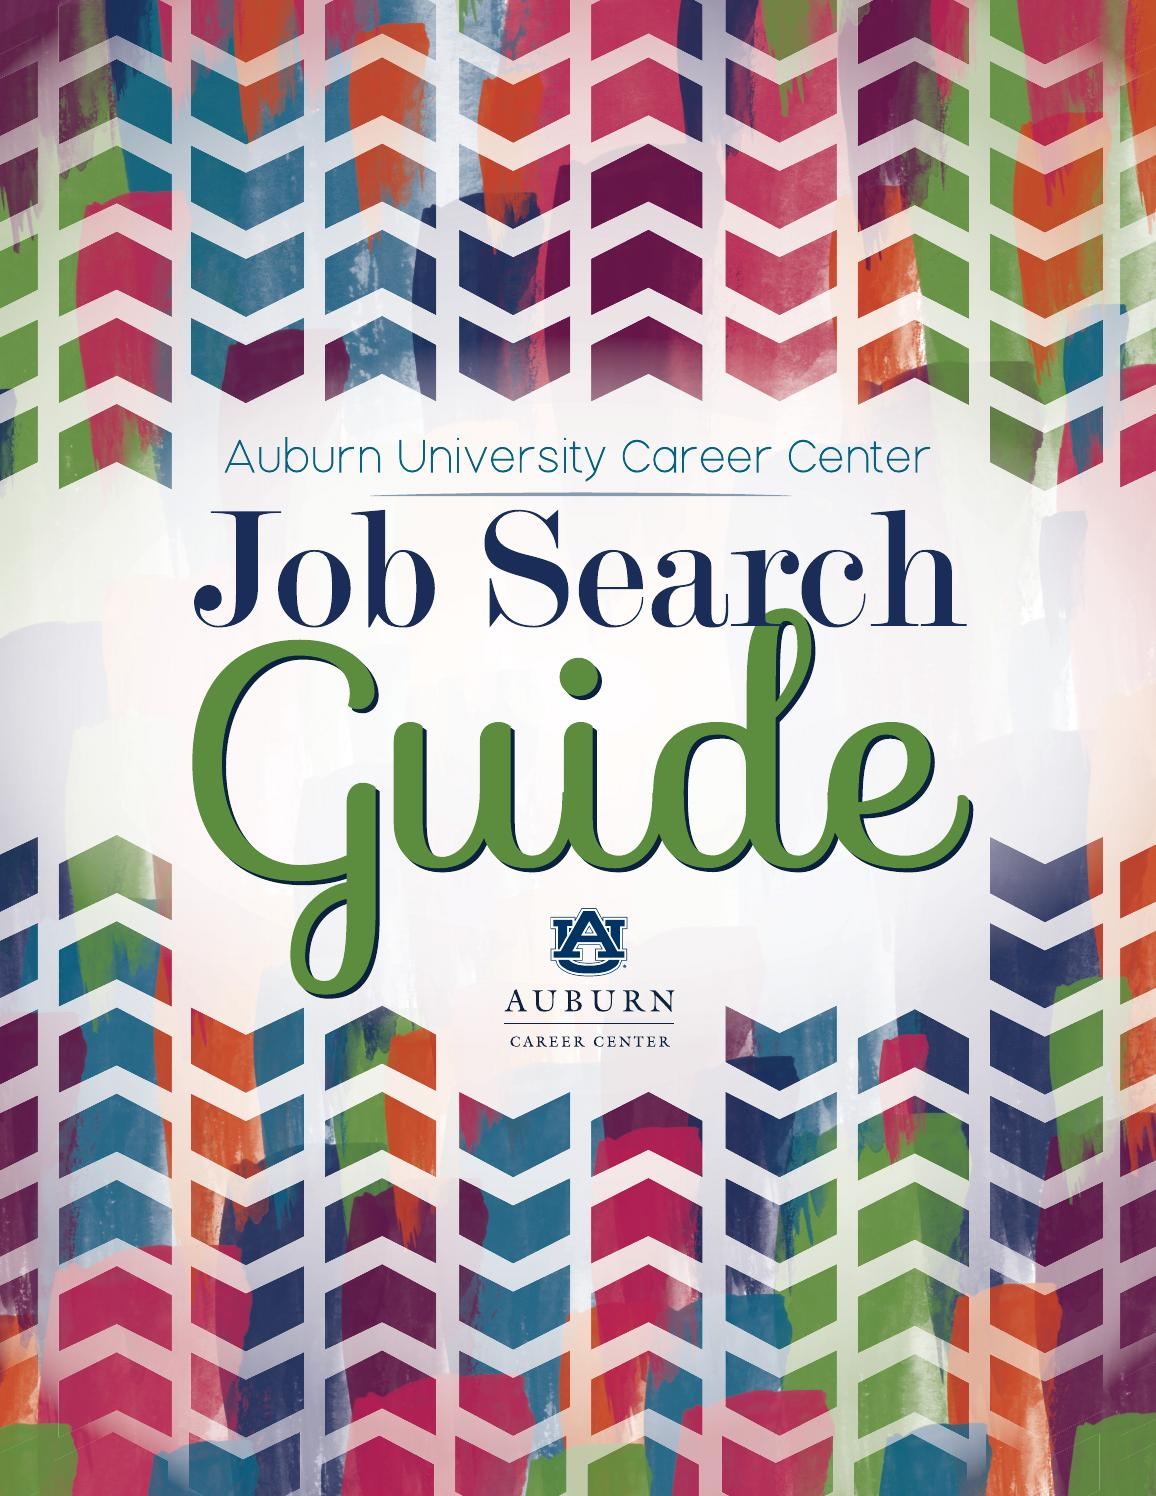 Auburn University Career Center - Job Search Guide 2015-2016